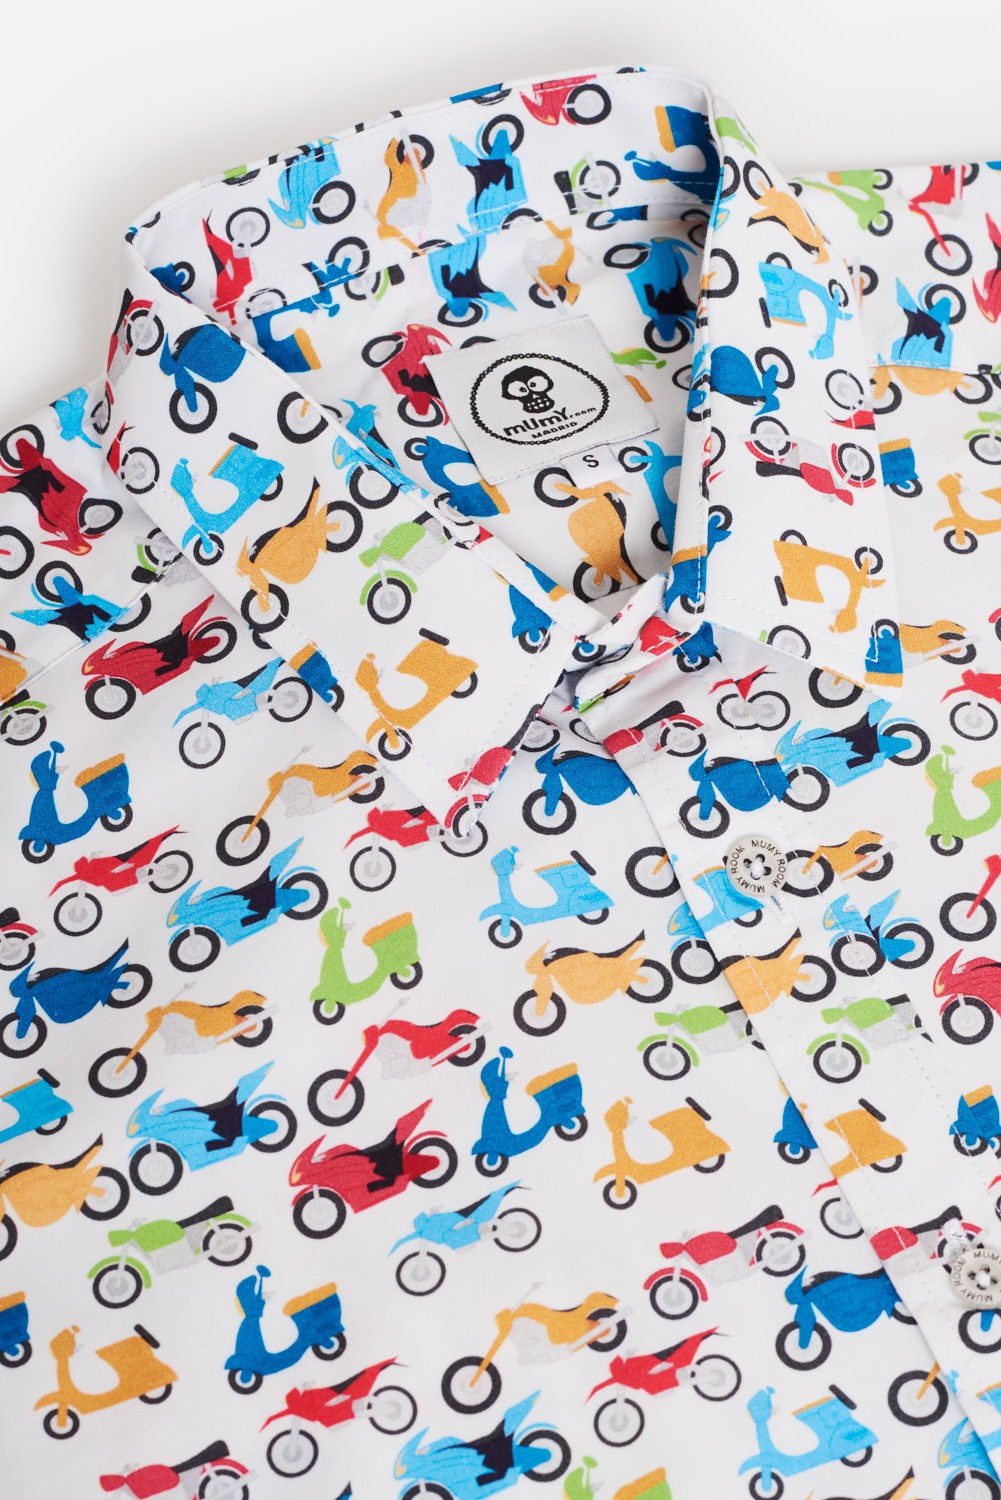 KID'S PRINTED SHIRT COLORED MOTORCYCLE